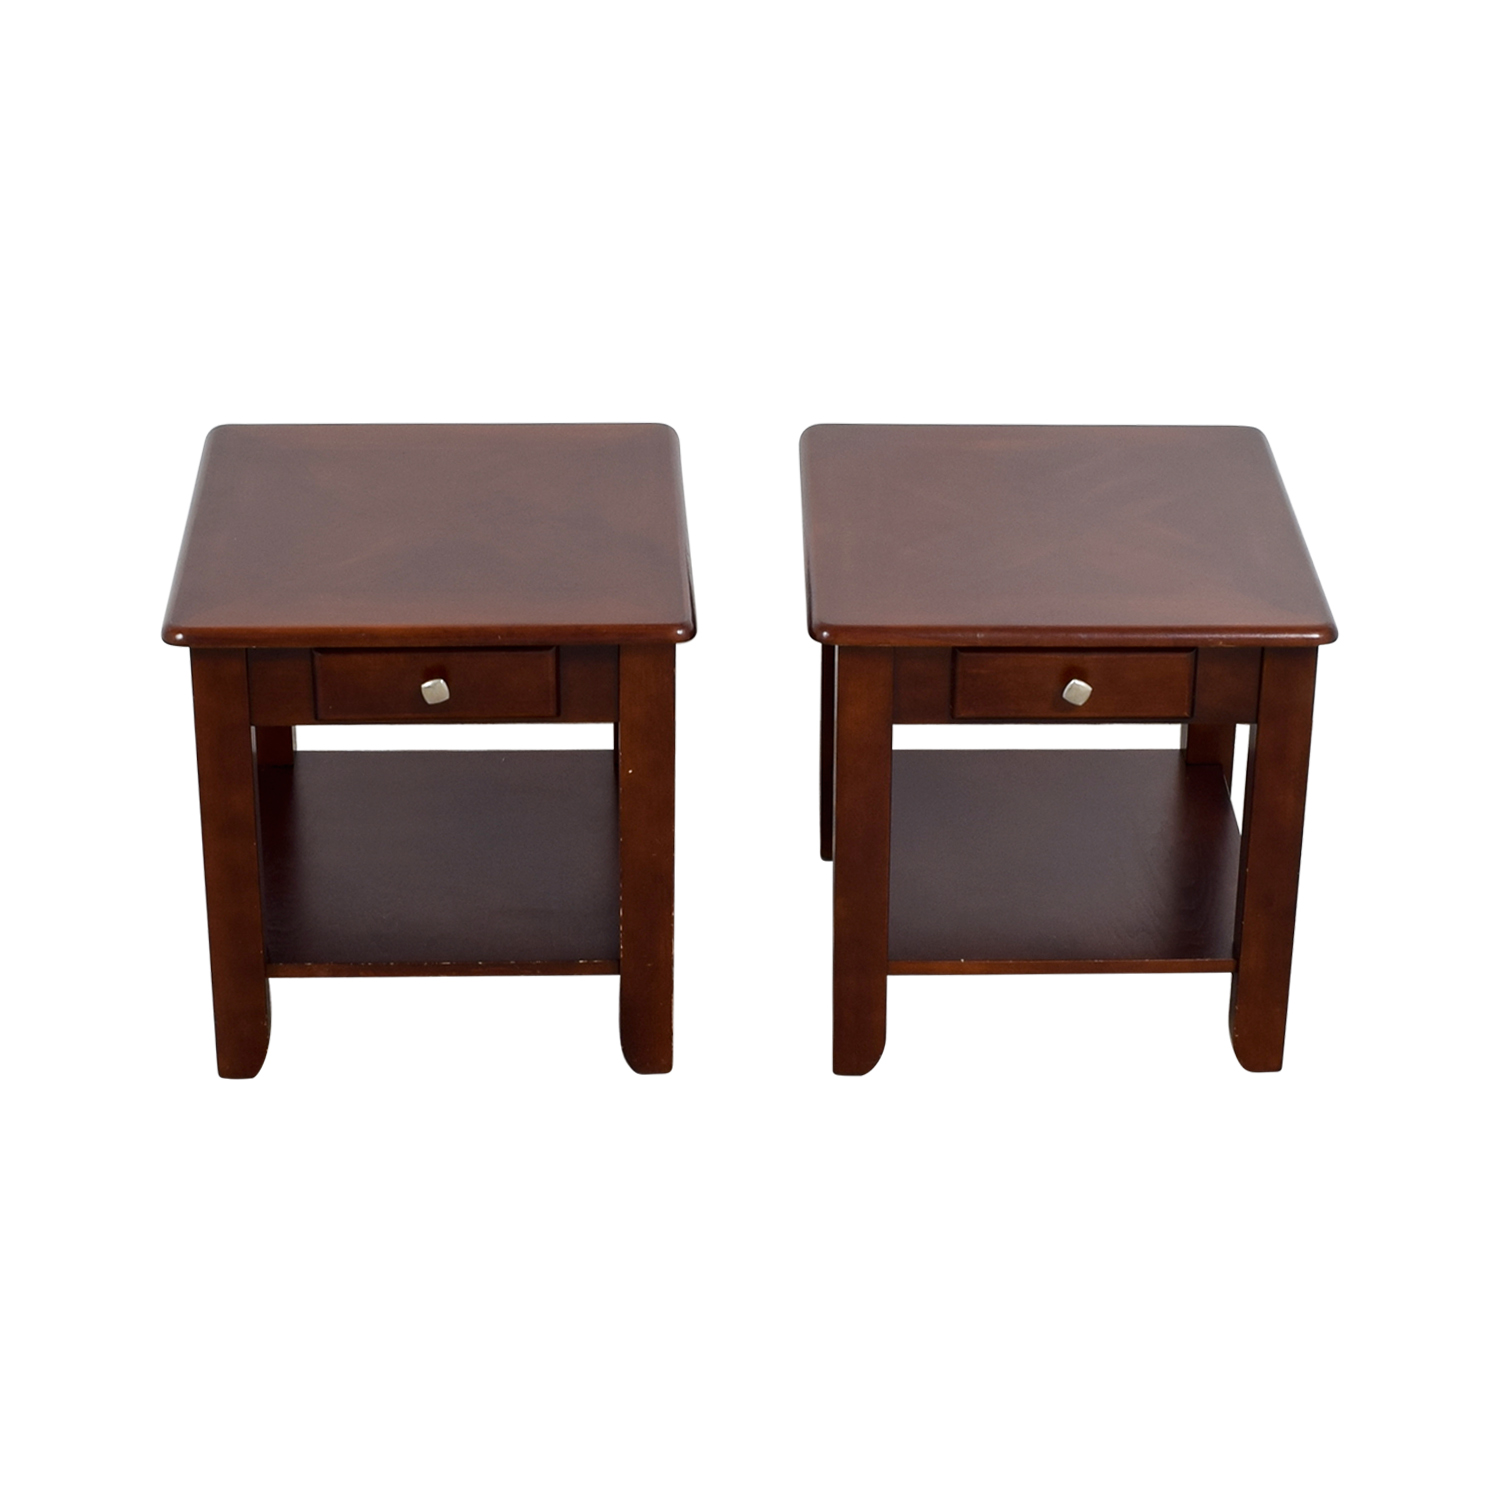 Raymour & Flanigan Raymour & Flanigan End Table set dimensions